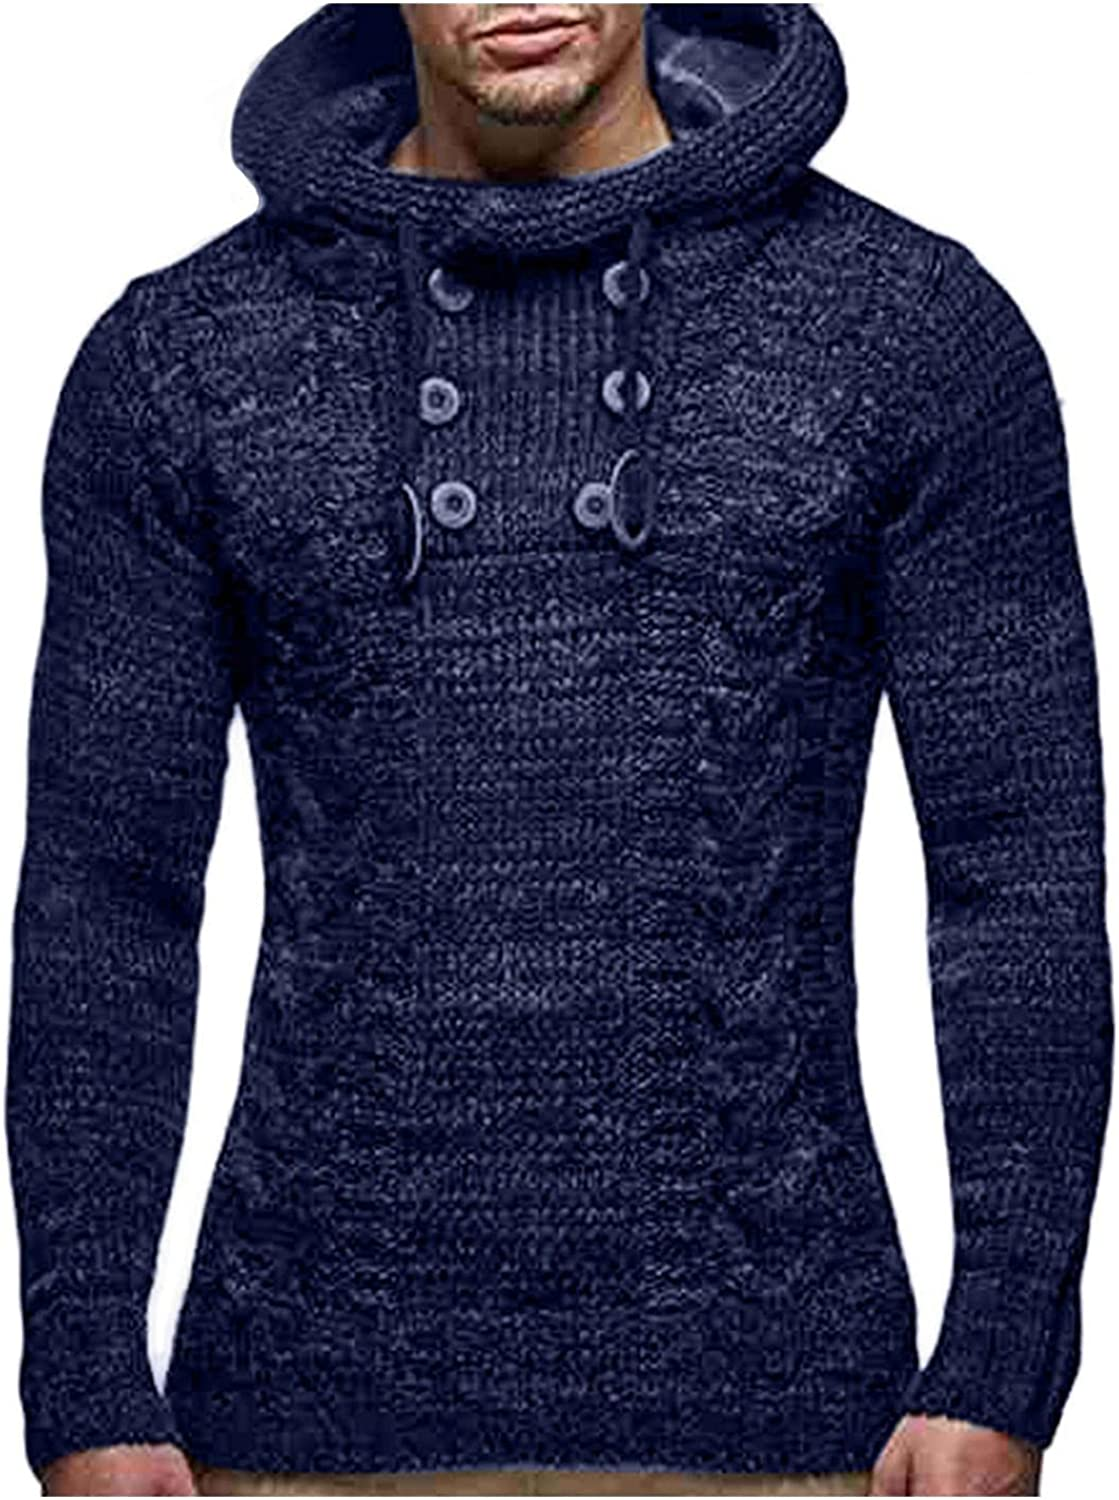 Burband Mens Cowl Neck Cable Knitted Cardigan Sweaters Turtleneck Long Sleeve Pullover Hoodie Sweatshirts Big and Tall